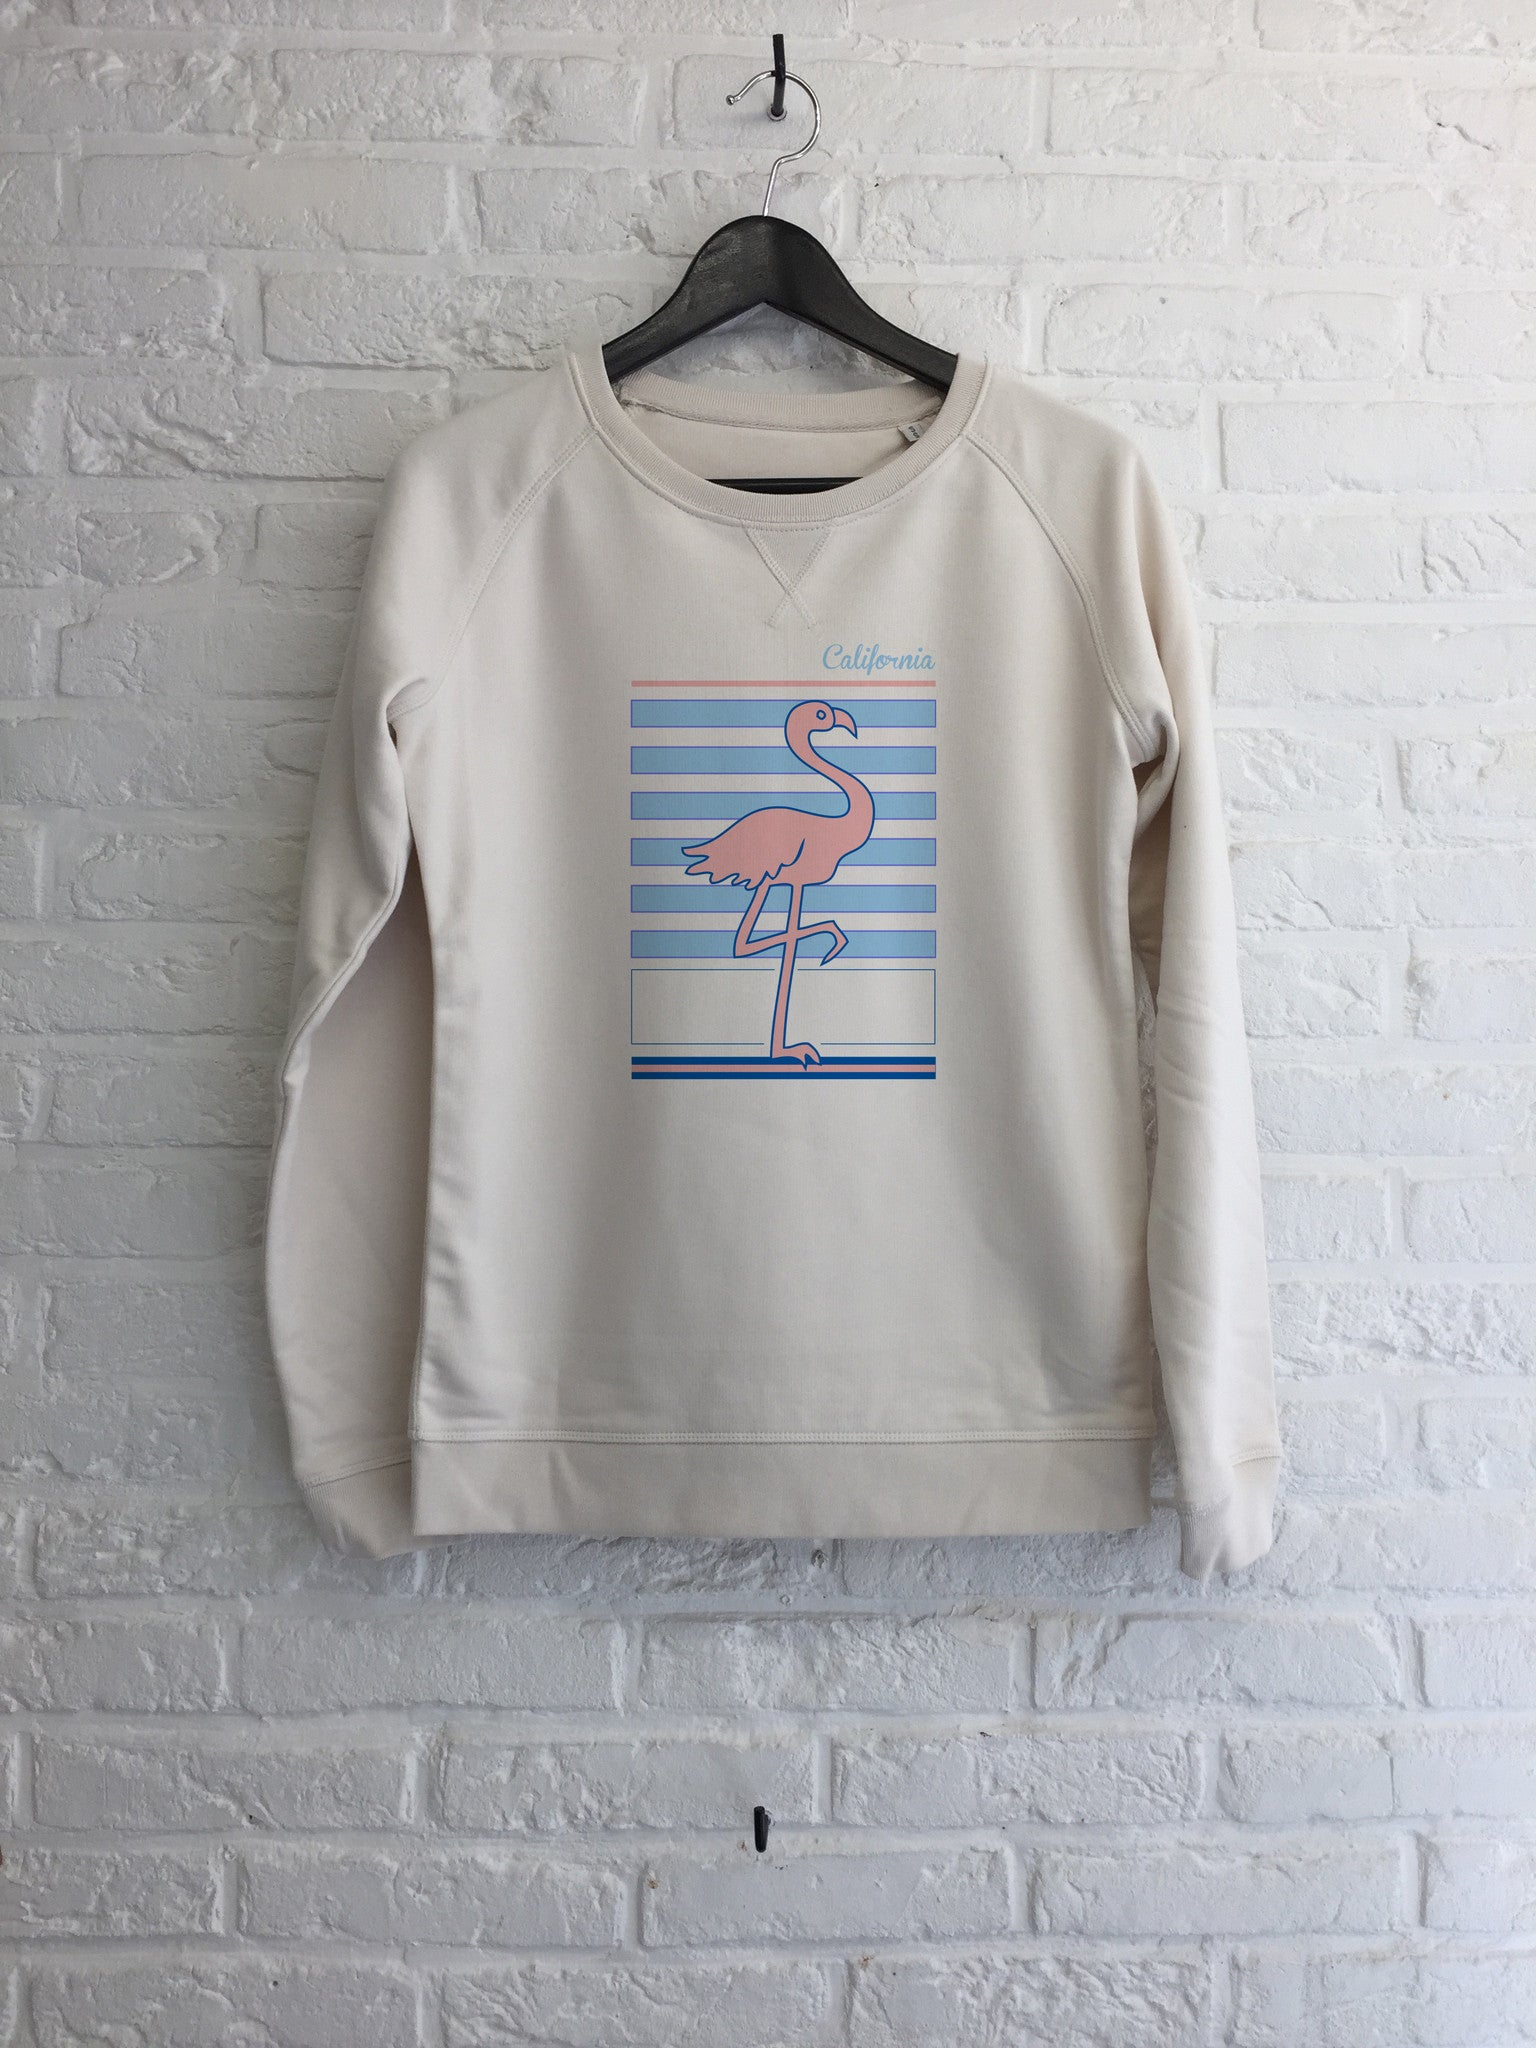 Flamant rose california - Sweat Femme-Sweat shirts-Atelier Amelot